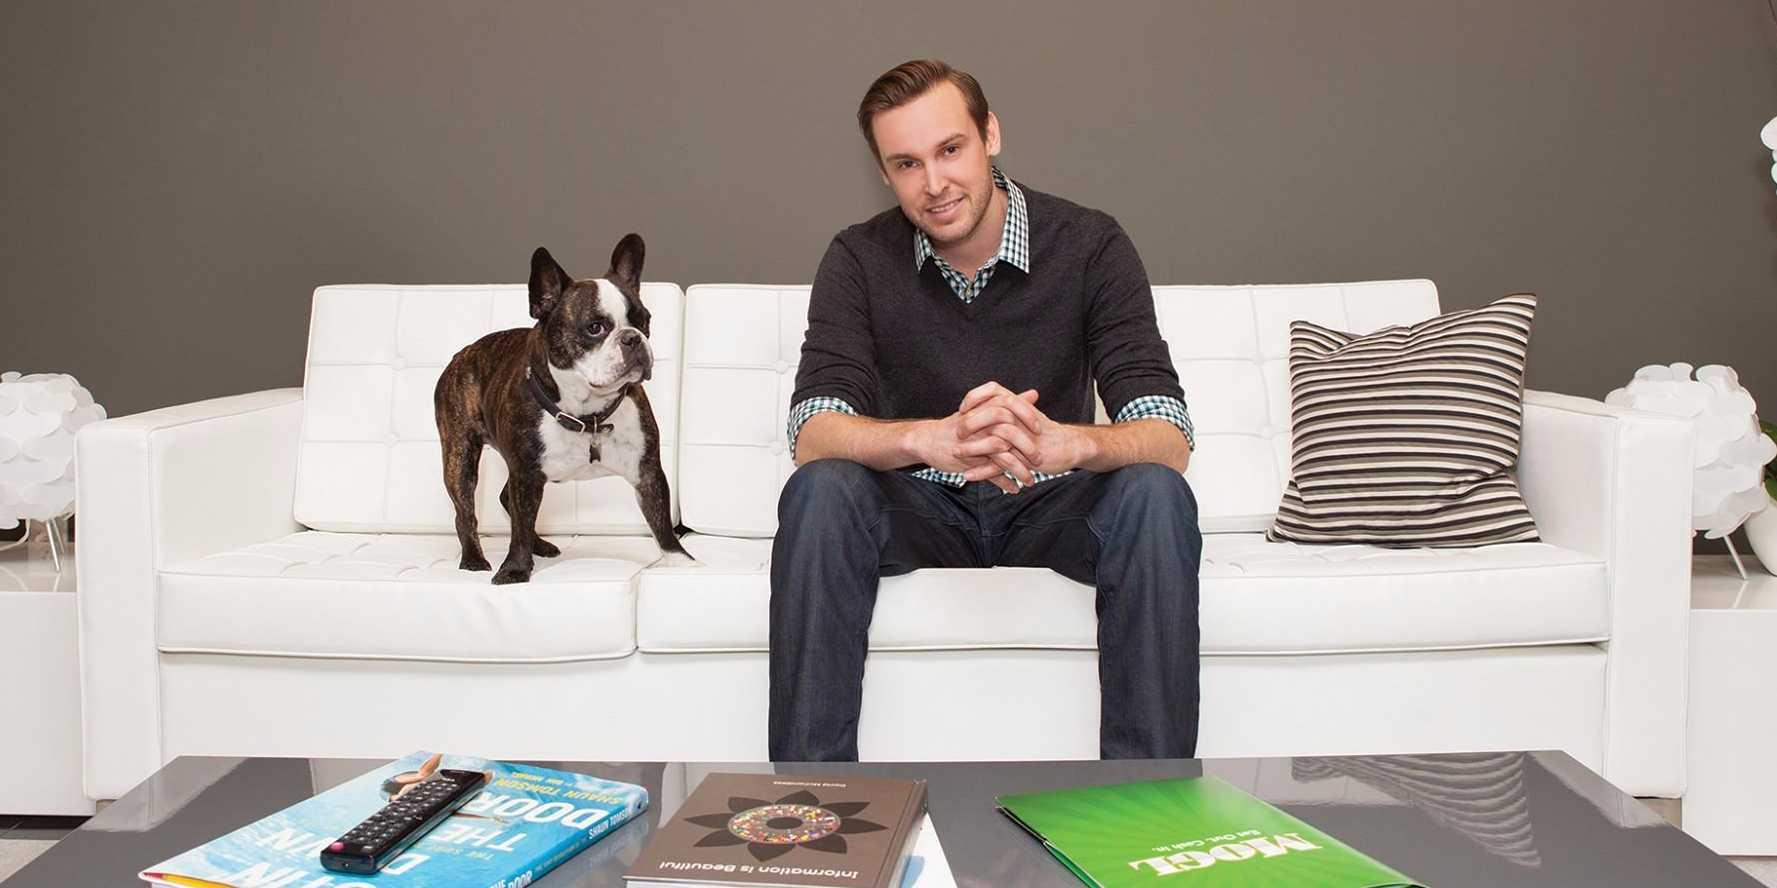 A millionaire who retired at age 27 explains why he went back to work after only 3 weeks